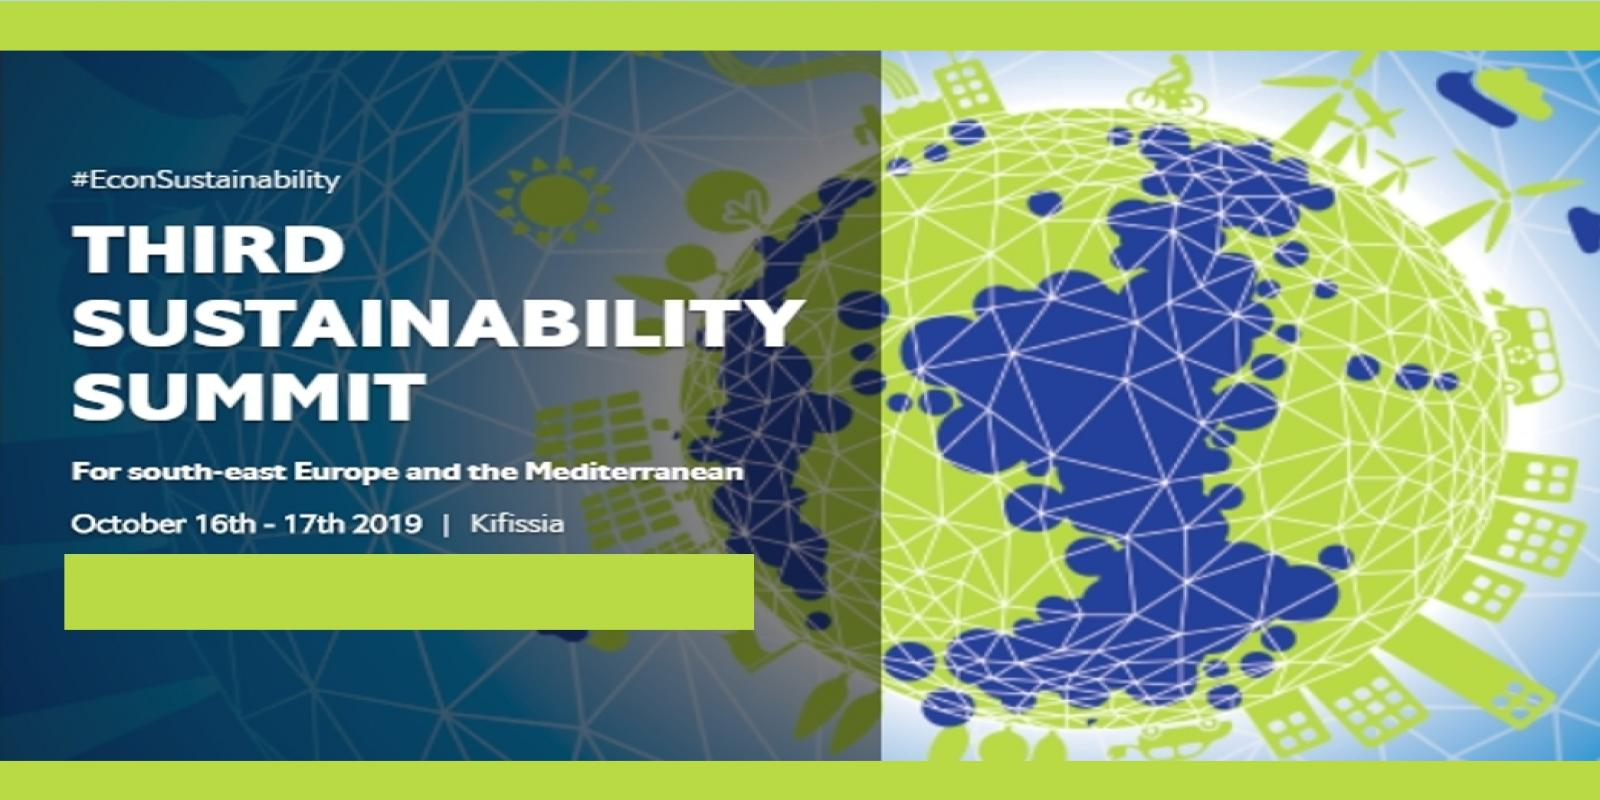 Third Sustainability Summit